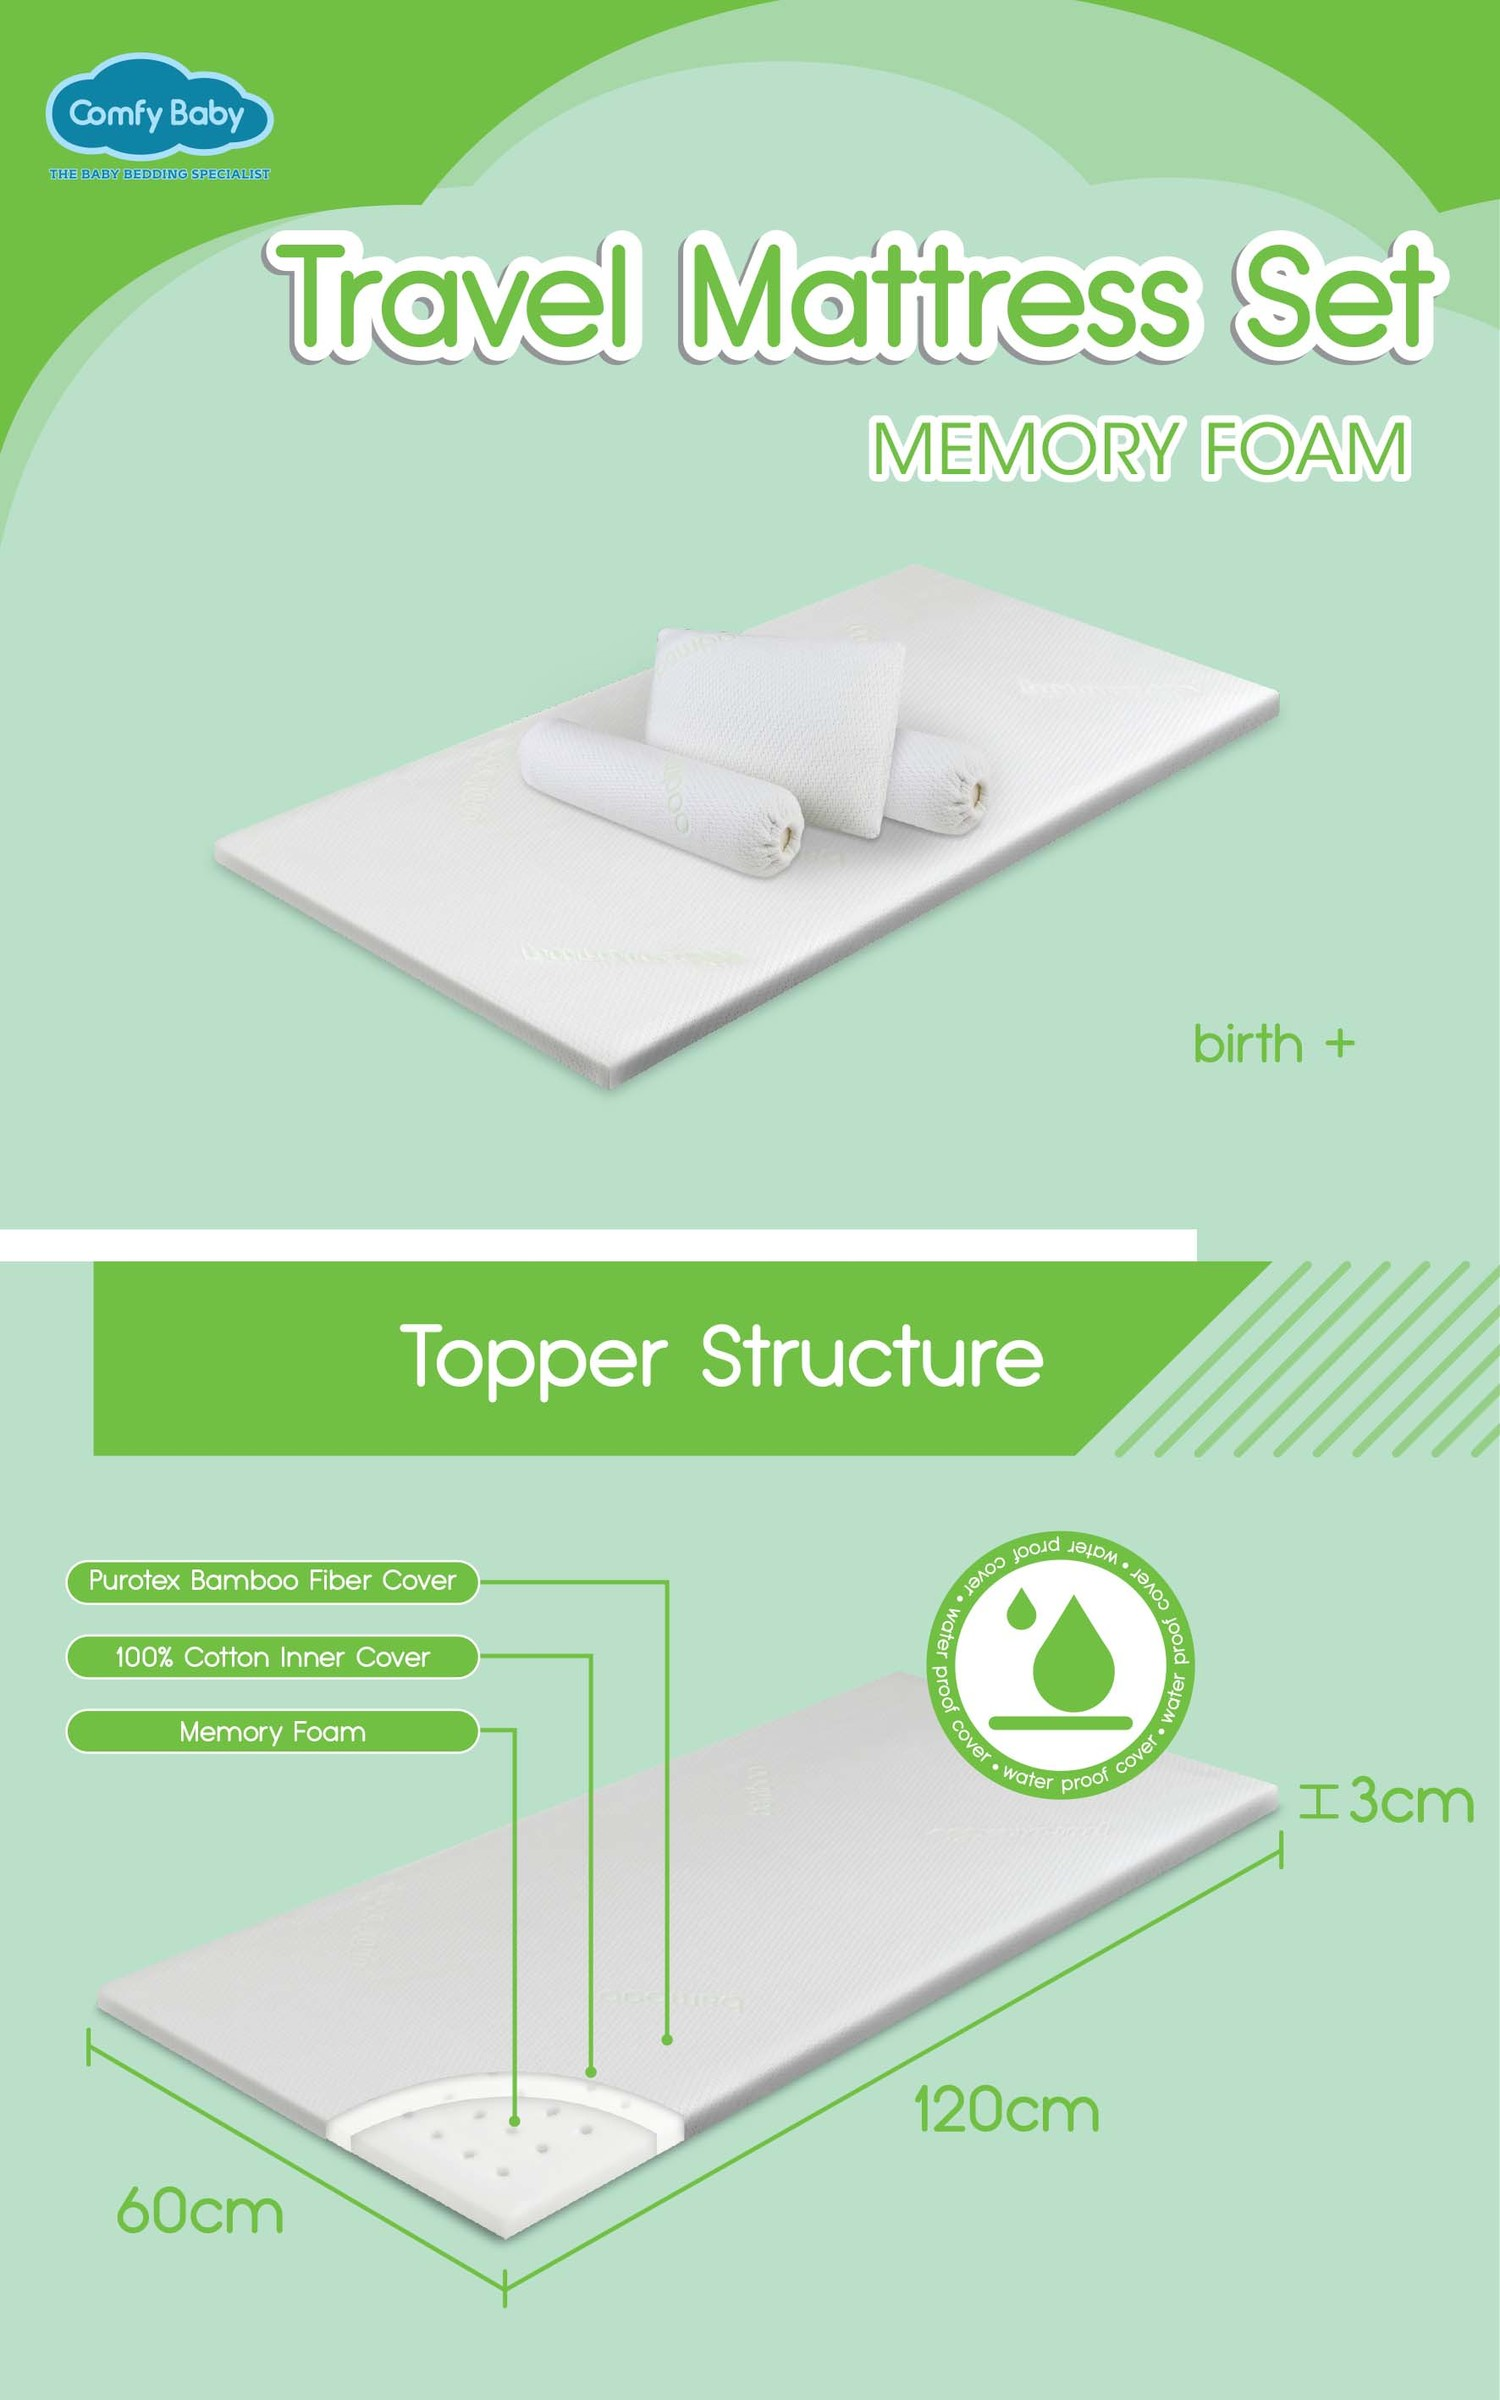 Baby Travel Mattress Comfy Baby Travel Mattress Set